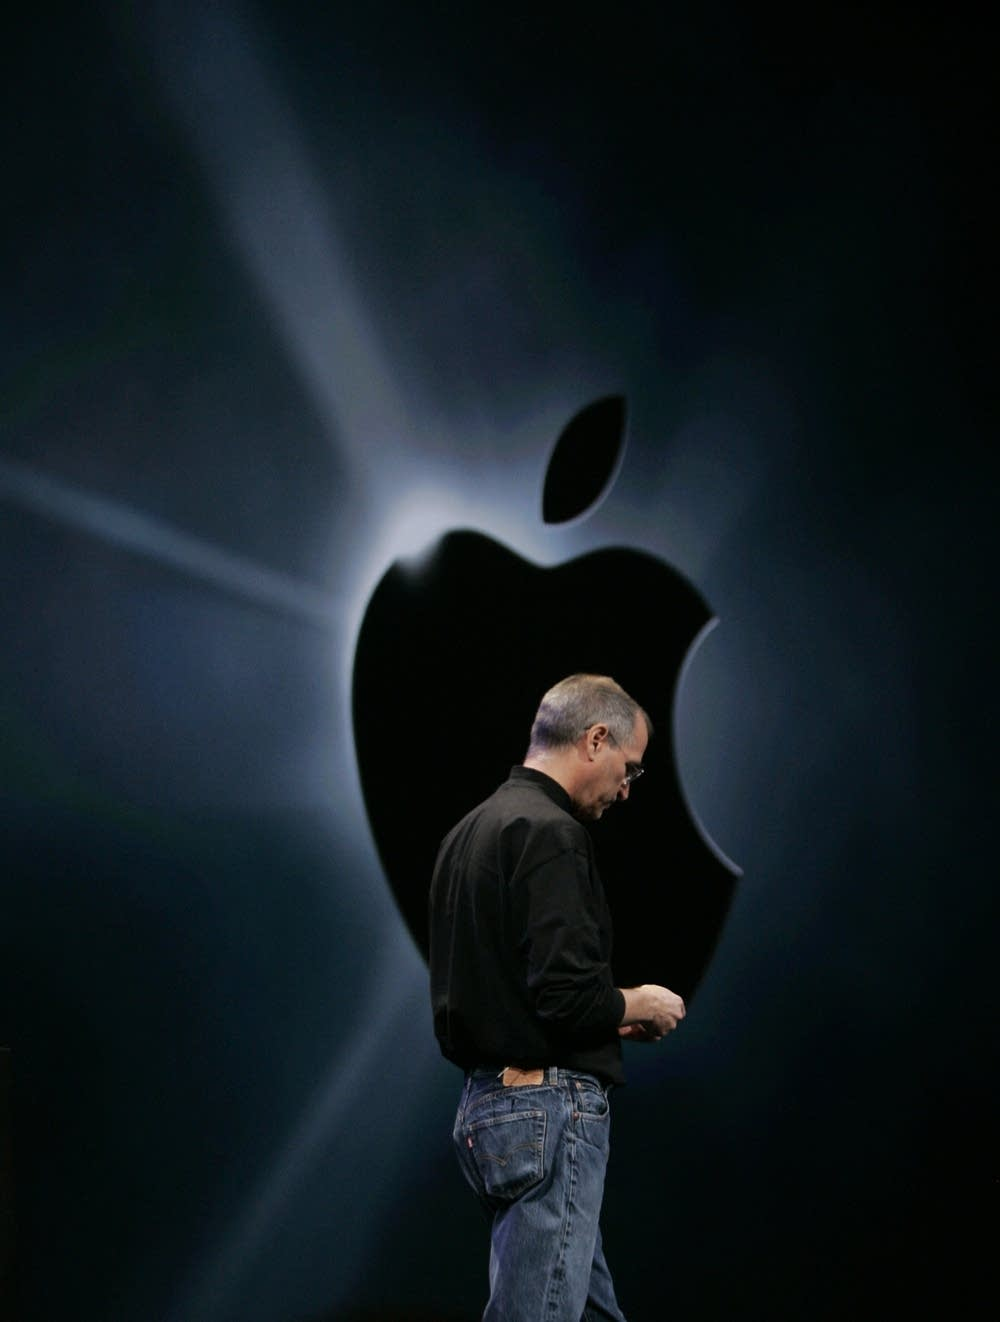 Steve Jobs and the Apple logo